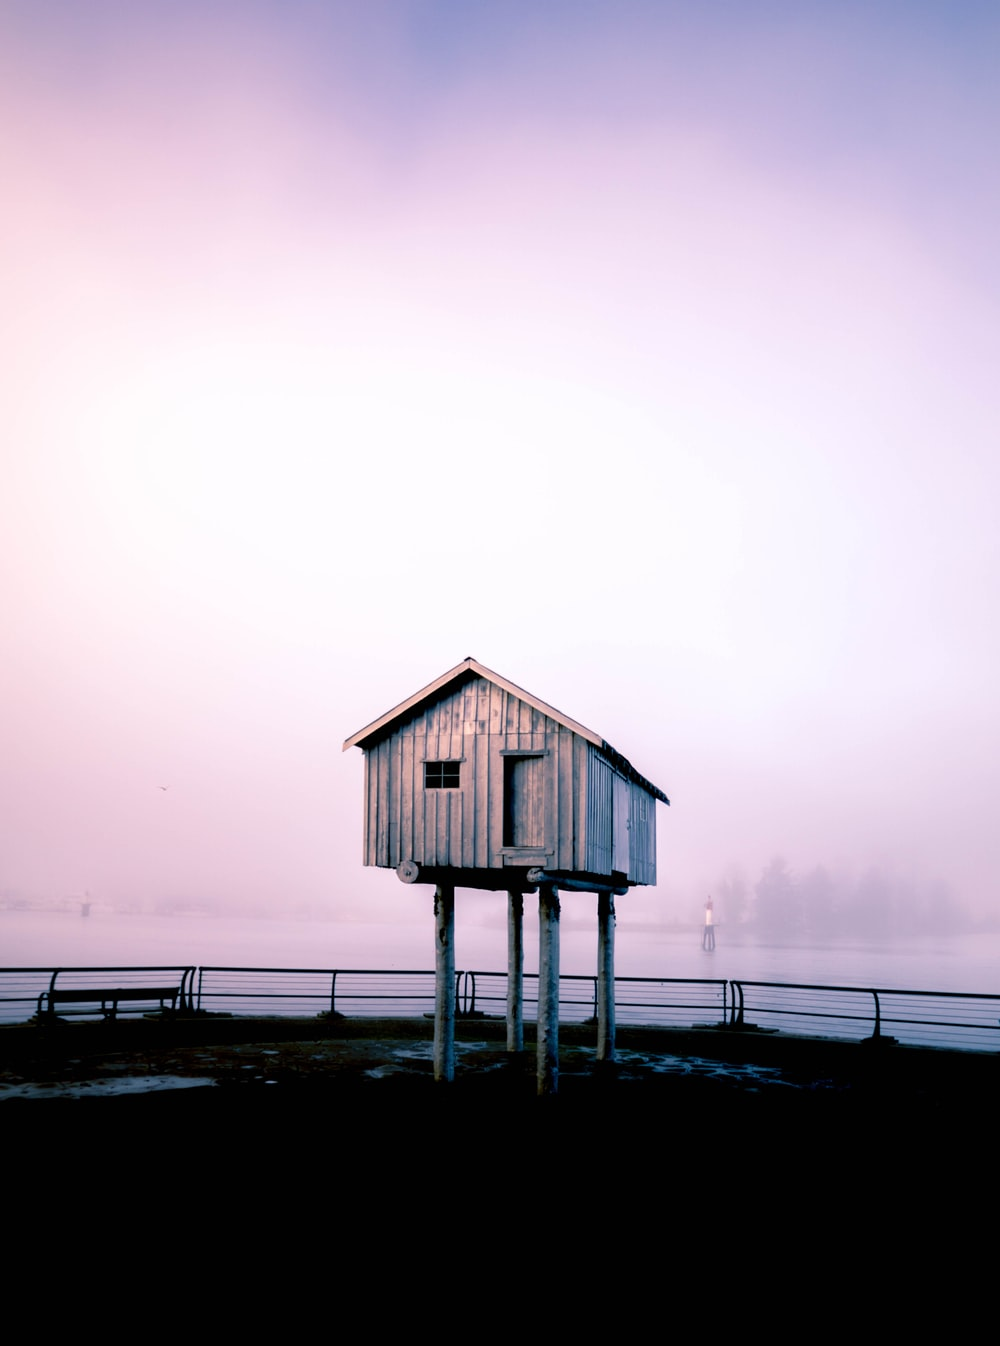 gray wooden storage shed under gray sky